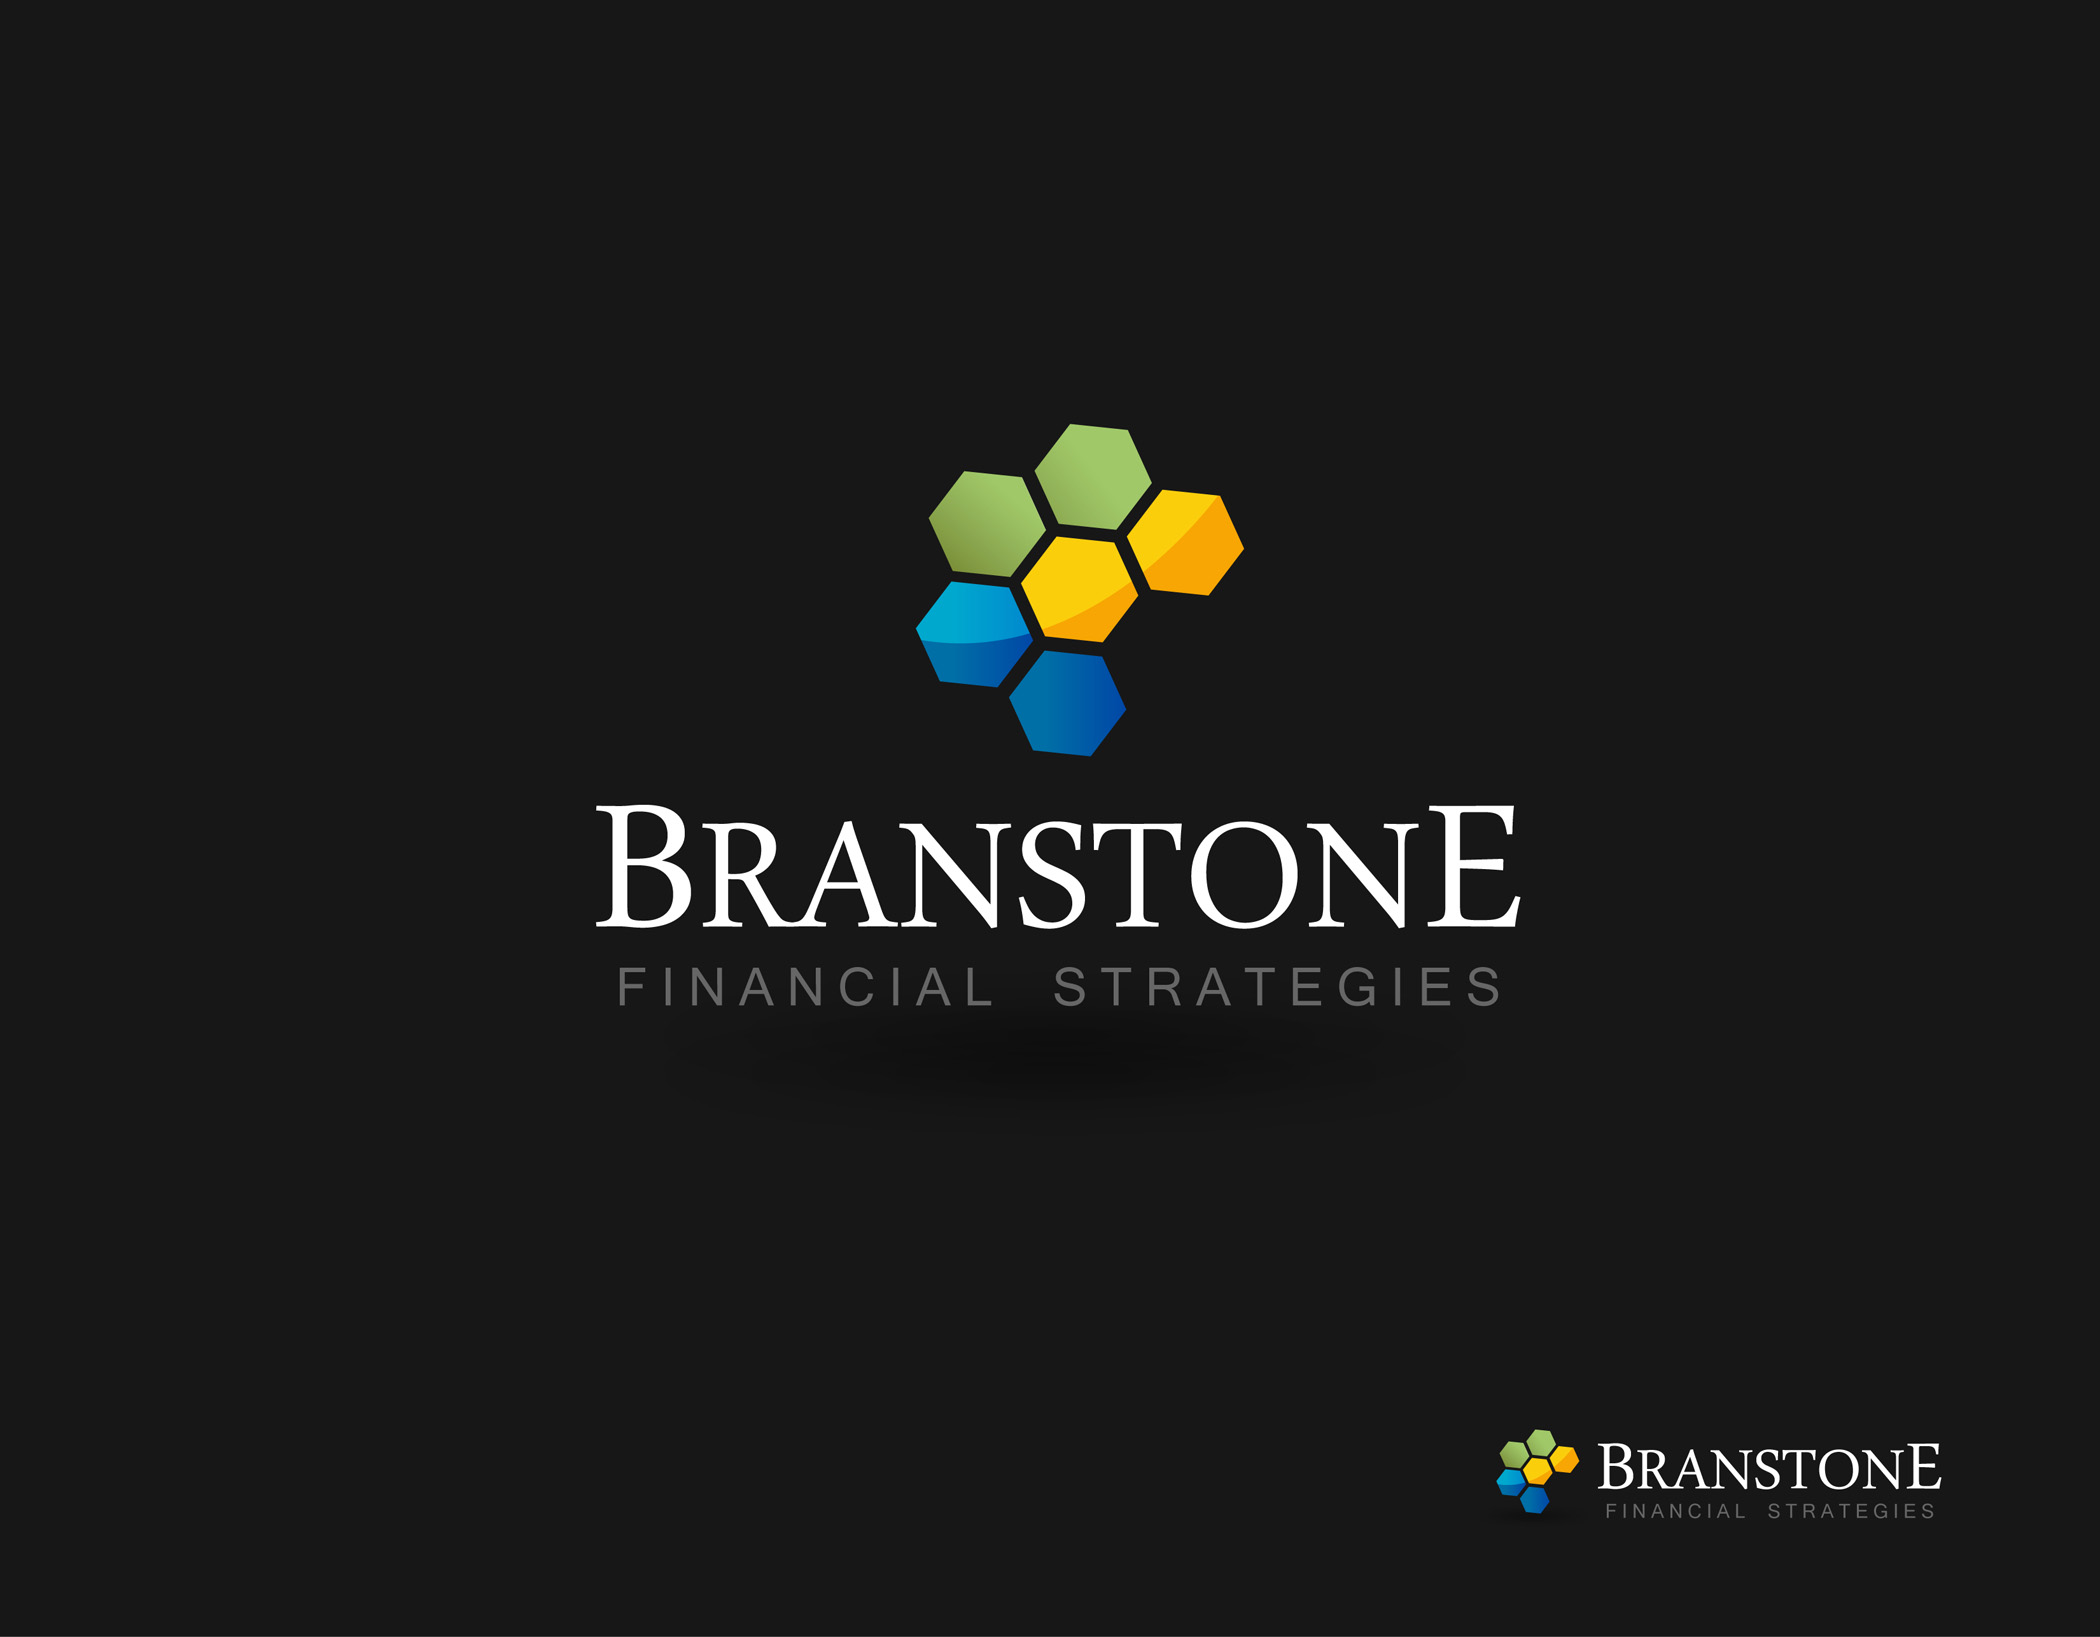 Logo Design by Mark Anthony Moreto Jordan - Entry No. 253 in the Logo Design Contest Inspiring Logo Design for Branstone Financial Strategies.